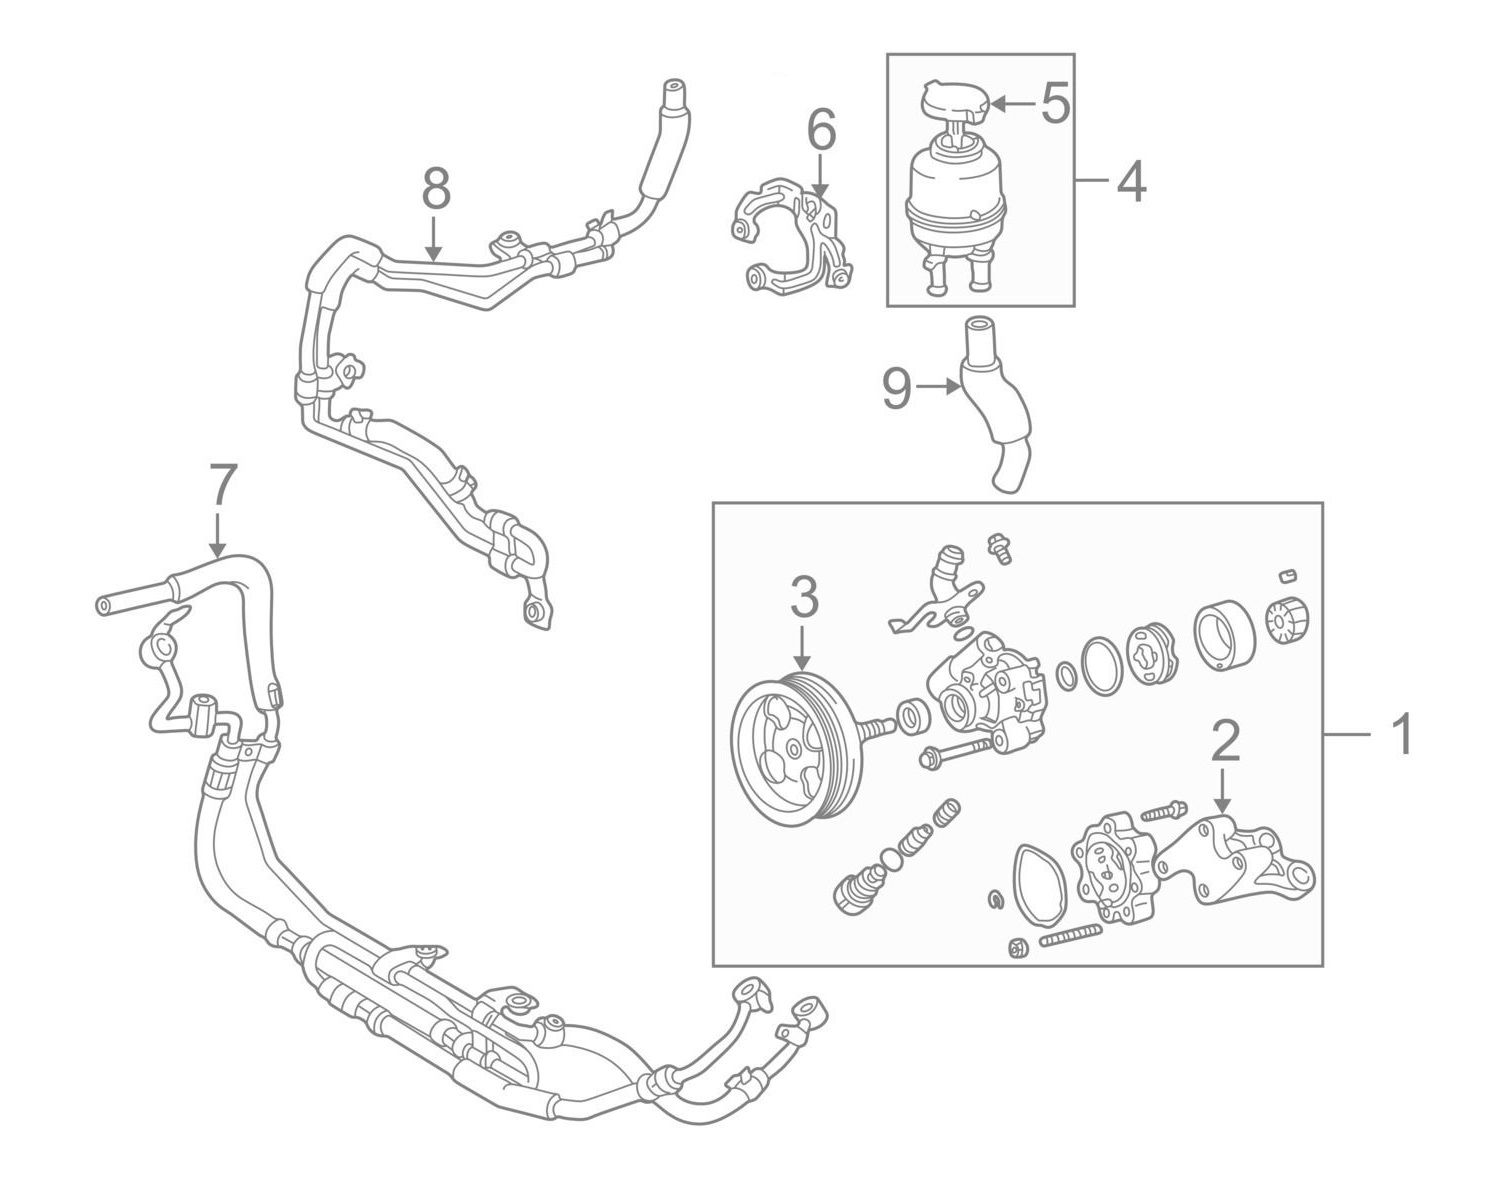 There are 2 hoses connected to the reservoir the one that goes to the power steering pump 9 in the picture below can be replaced with an ordinary rubber